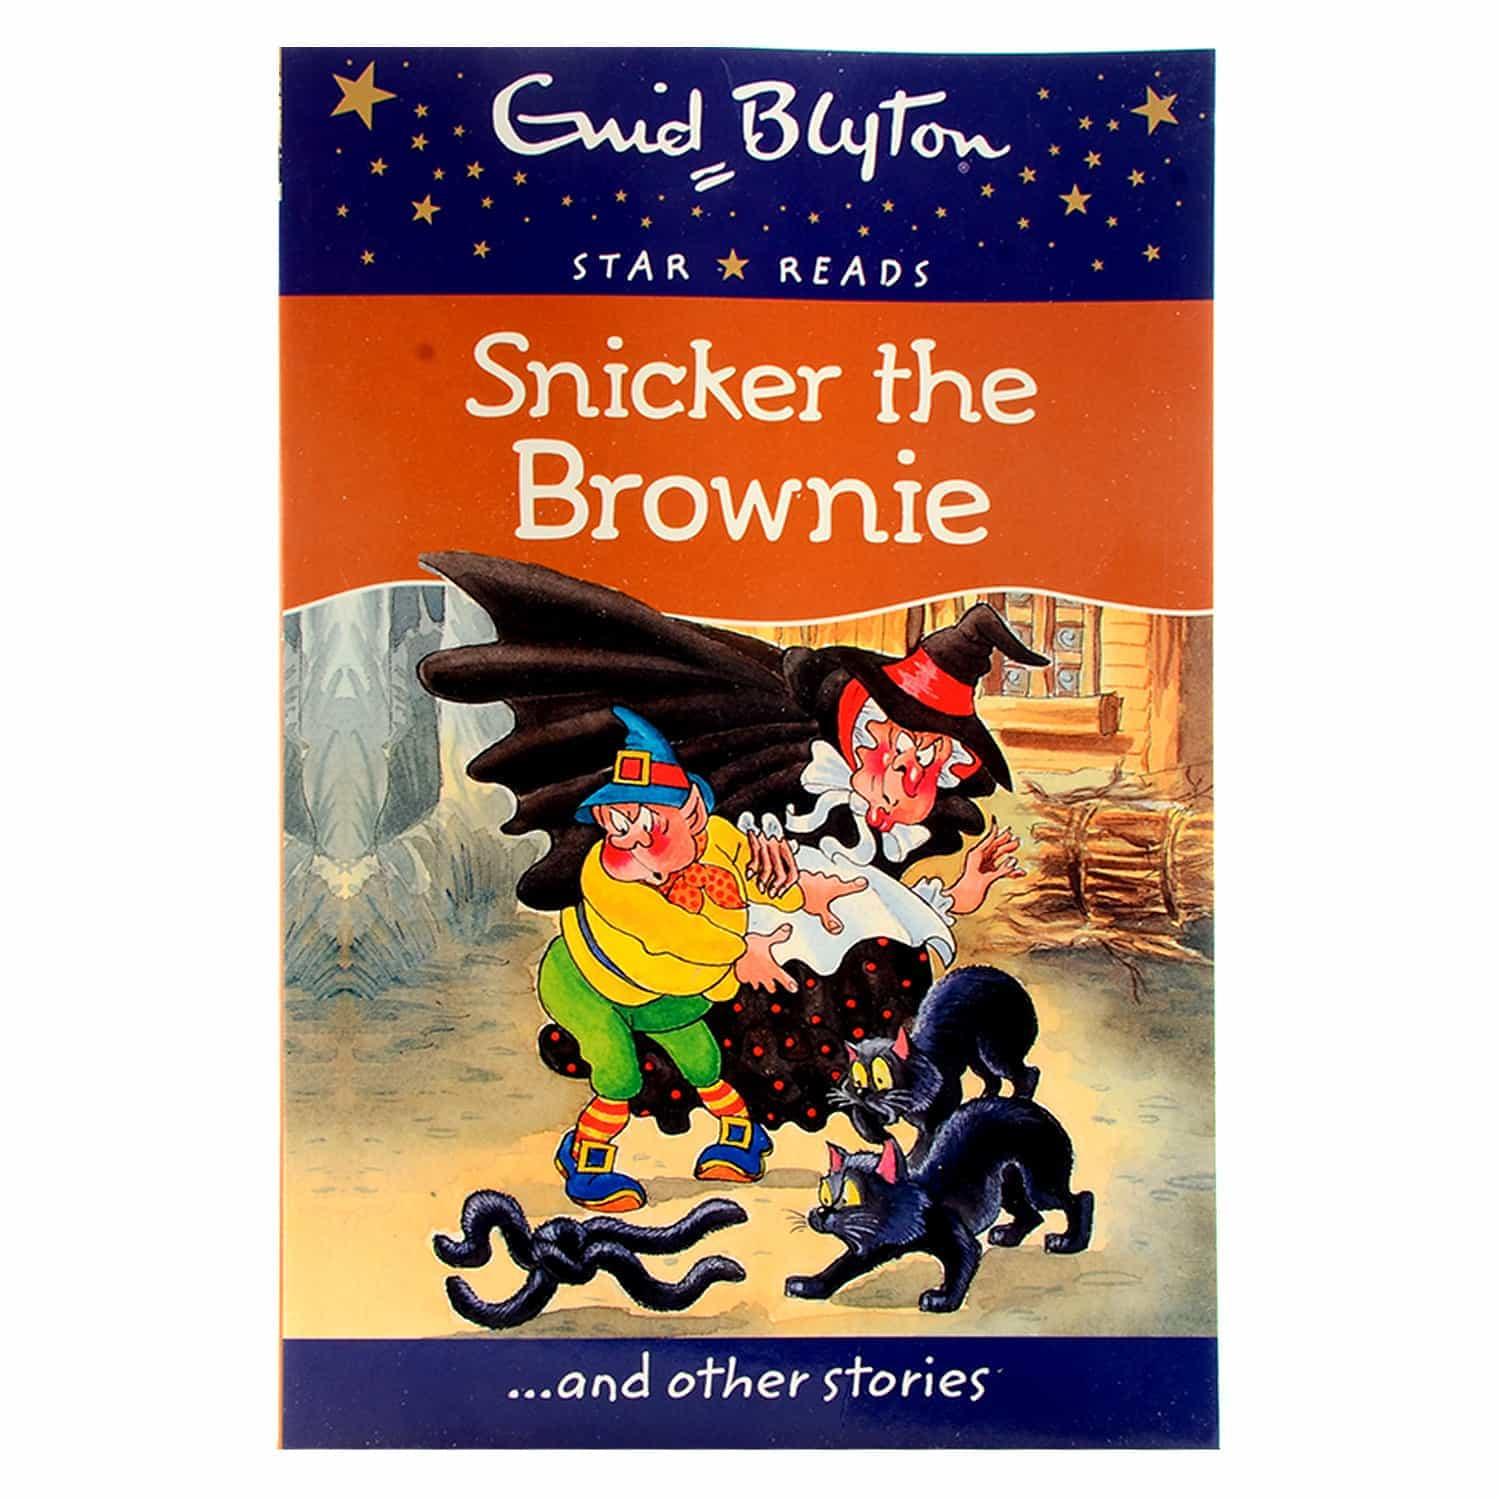 Enid Blyton - Snicker the Brownie and Other Stories